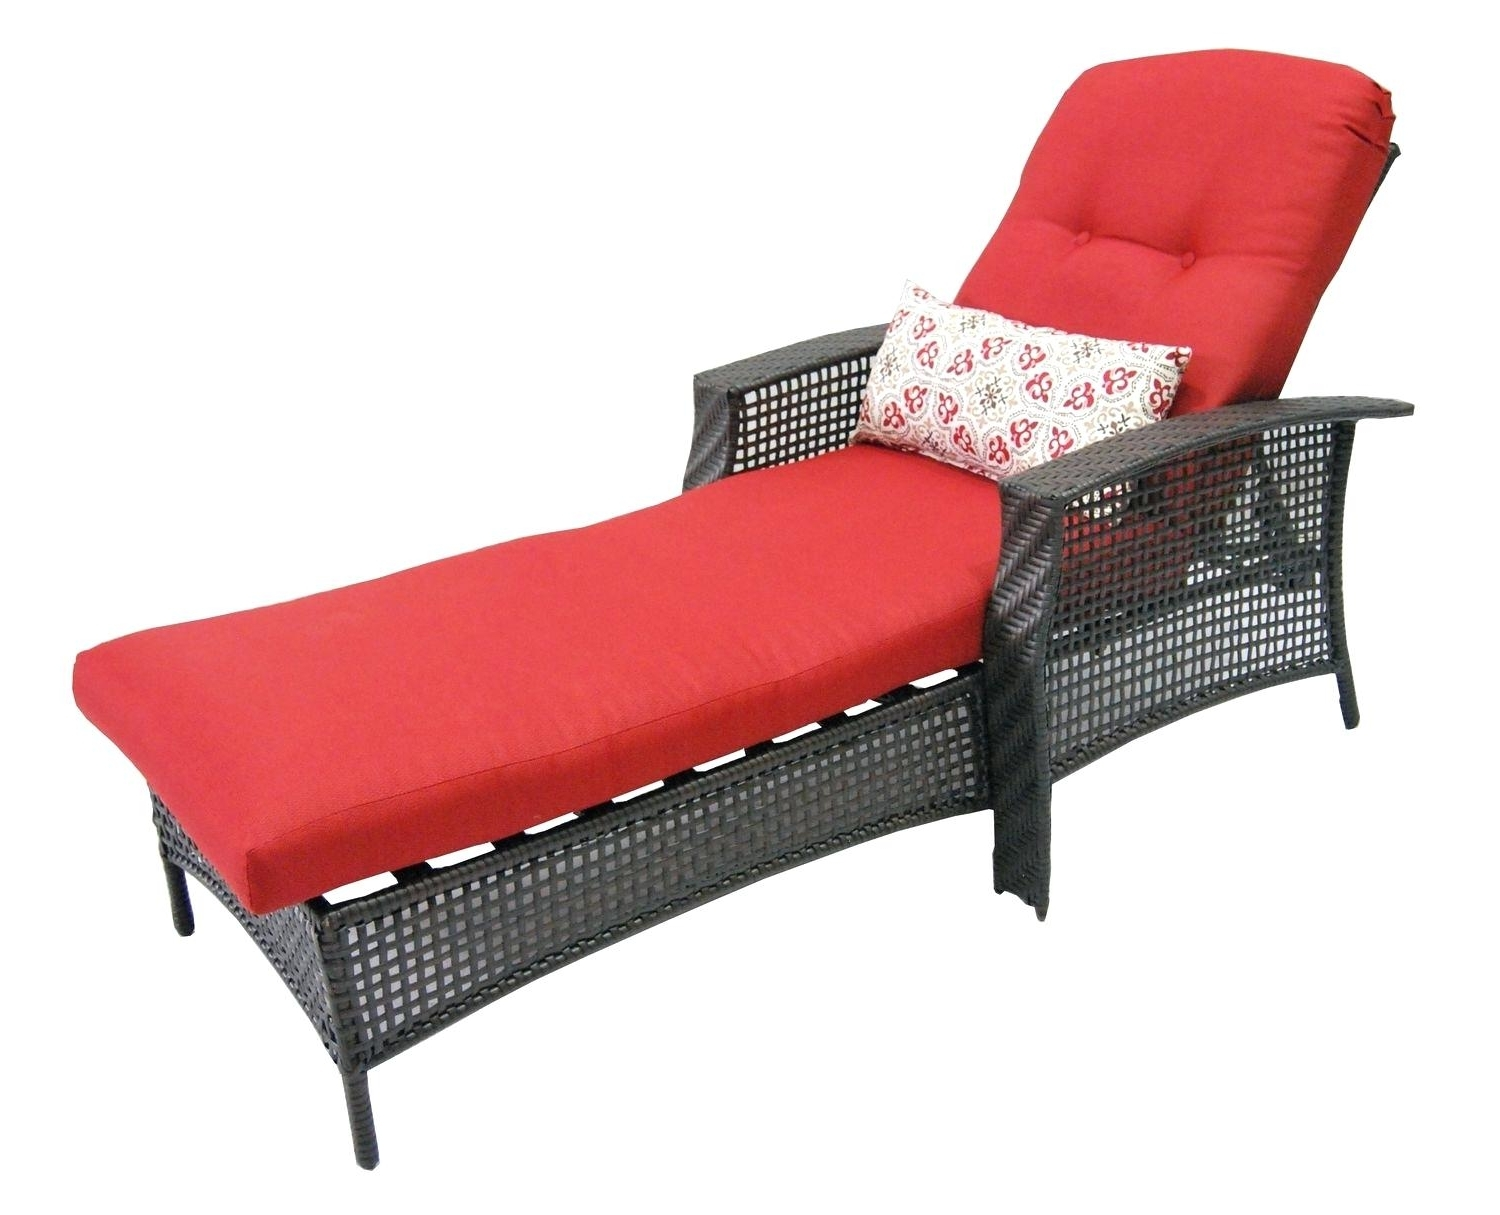 Walmart Chaise Lounge Cushions Double Cushion Outdoor Patio Pertaining To Well Liked Walmart Chaise Lounge Cushions (View 4 of 15)